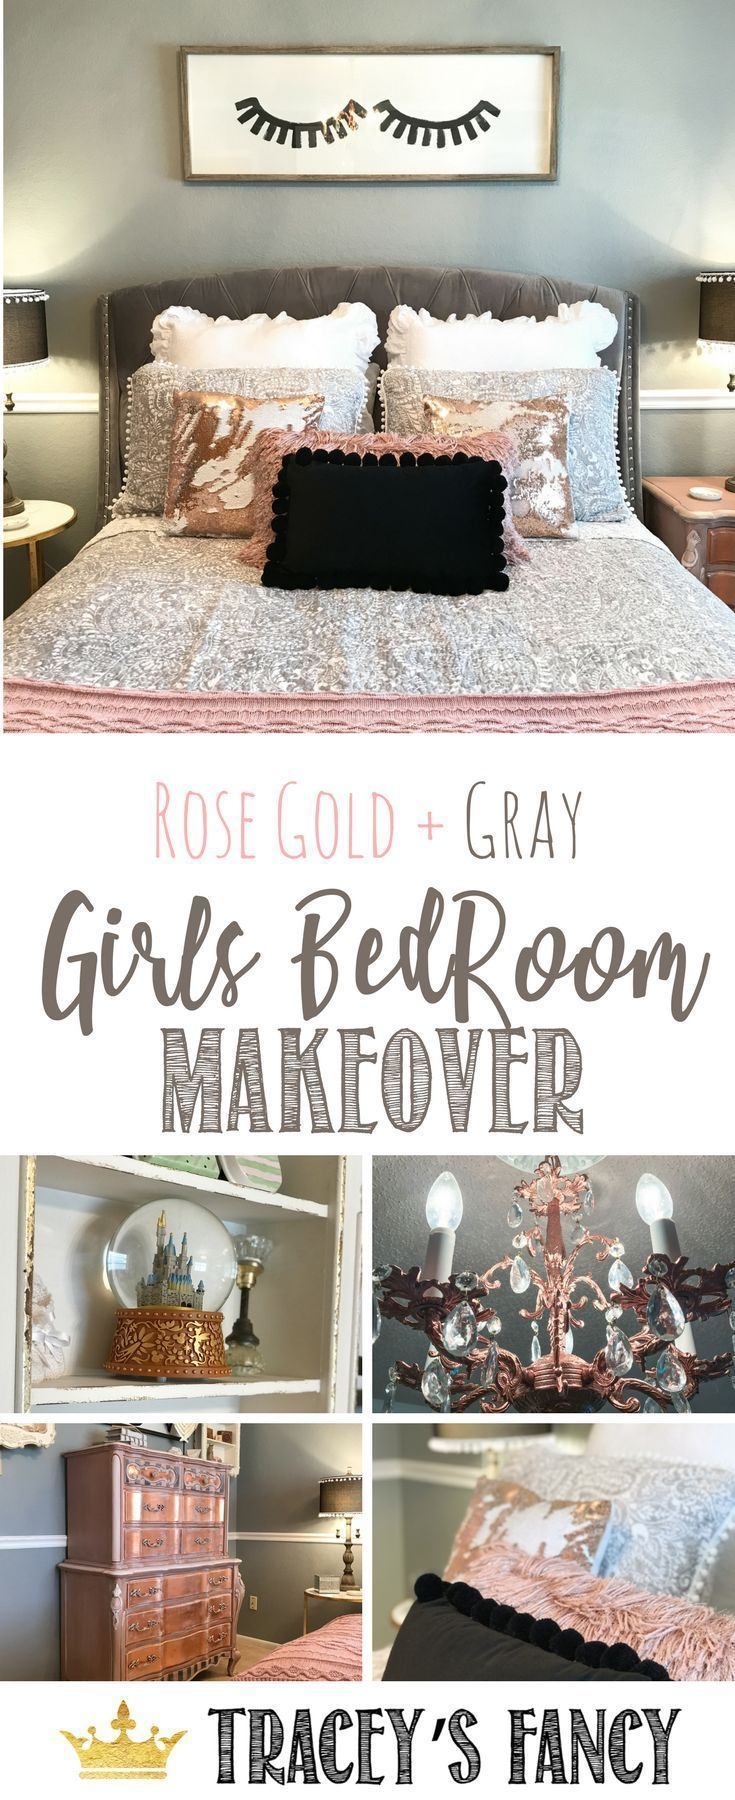 Rose gold gray girls room makeover by traceyus fancy bedroom